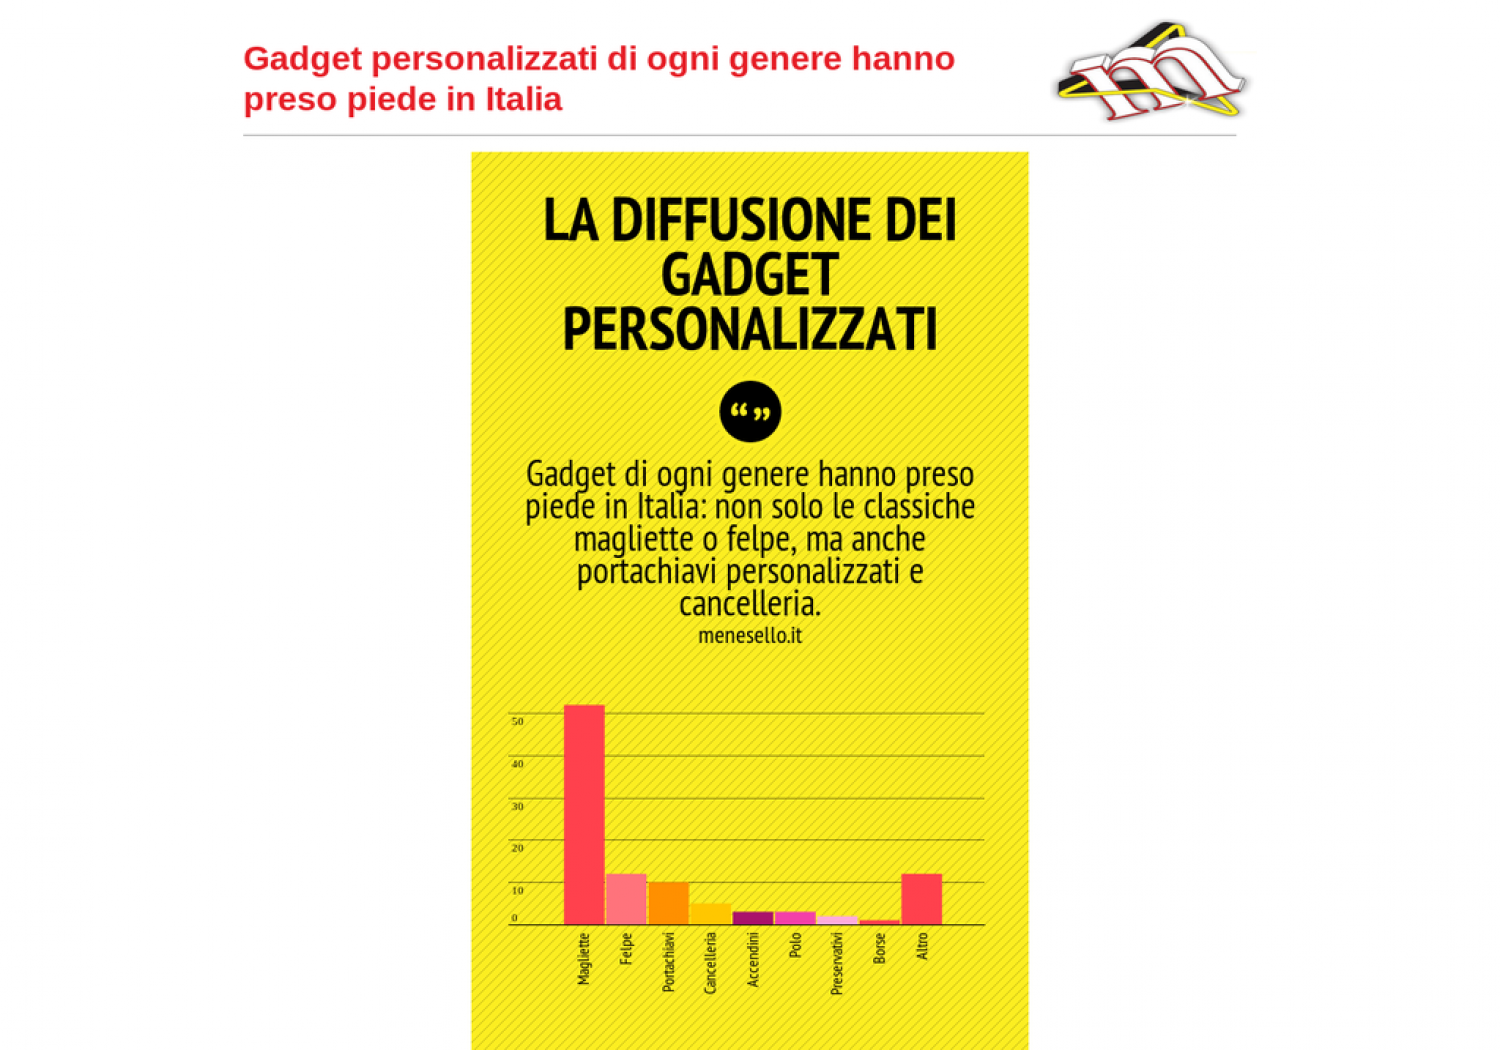 The spread of customized gadgets in Italy Infographic